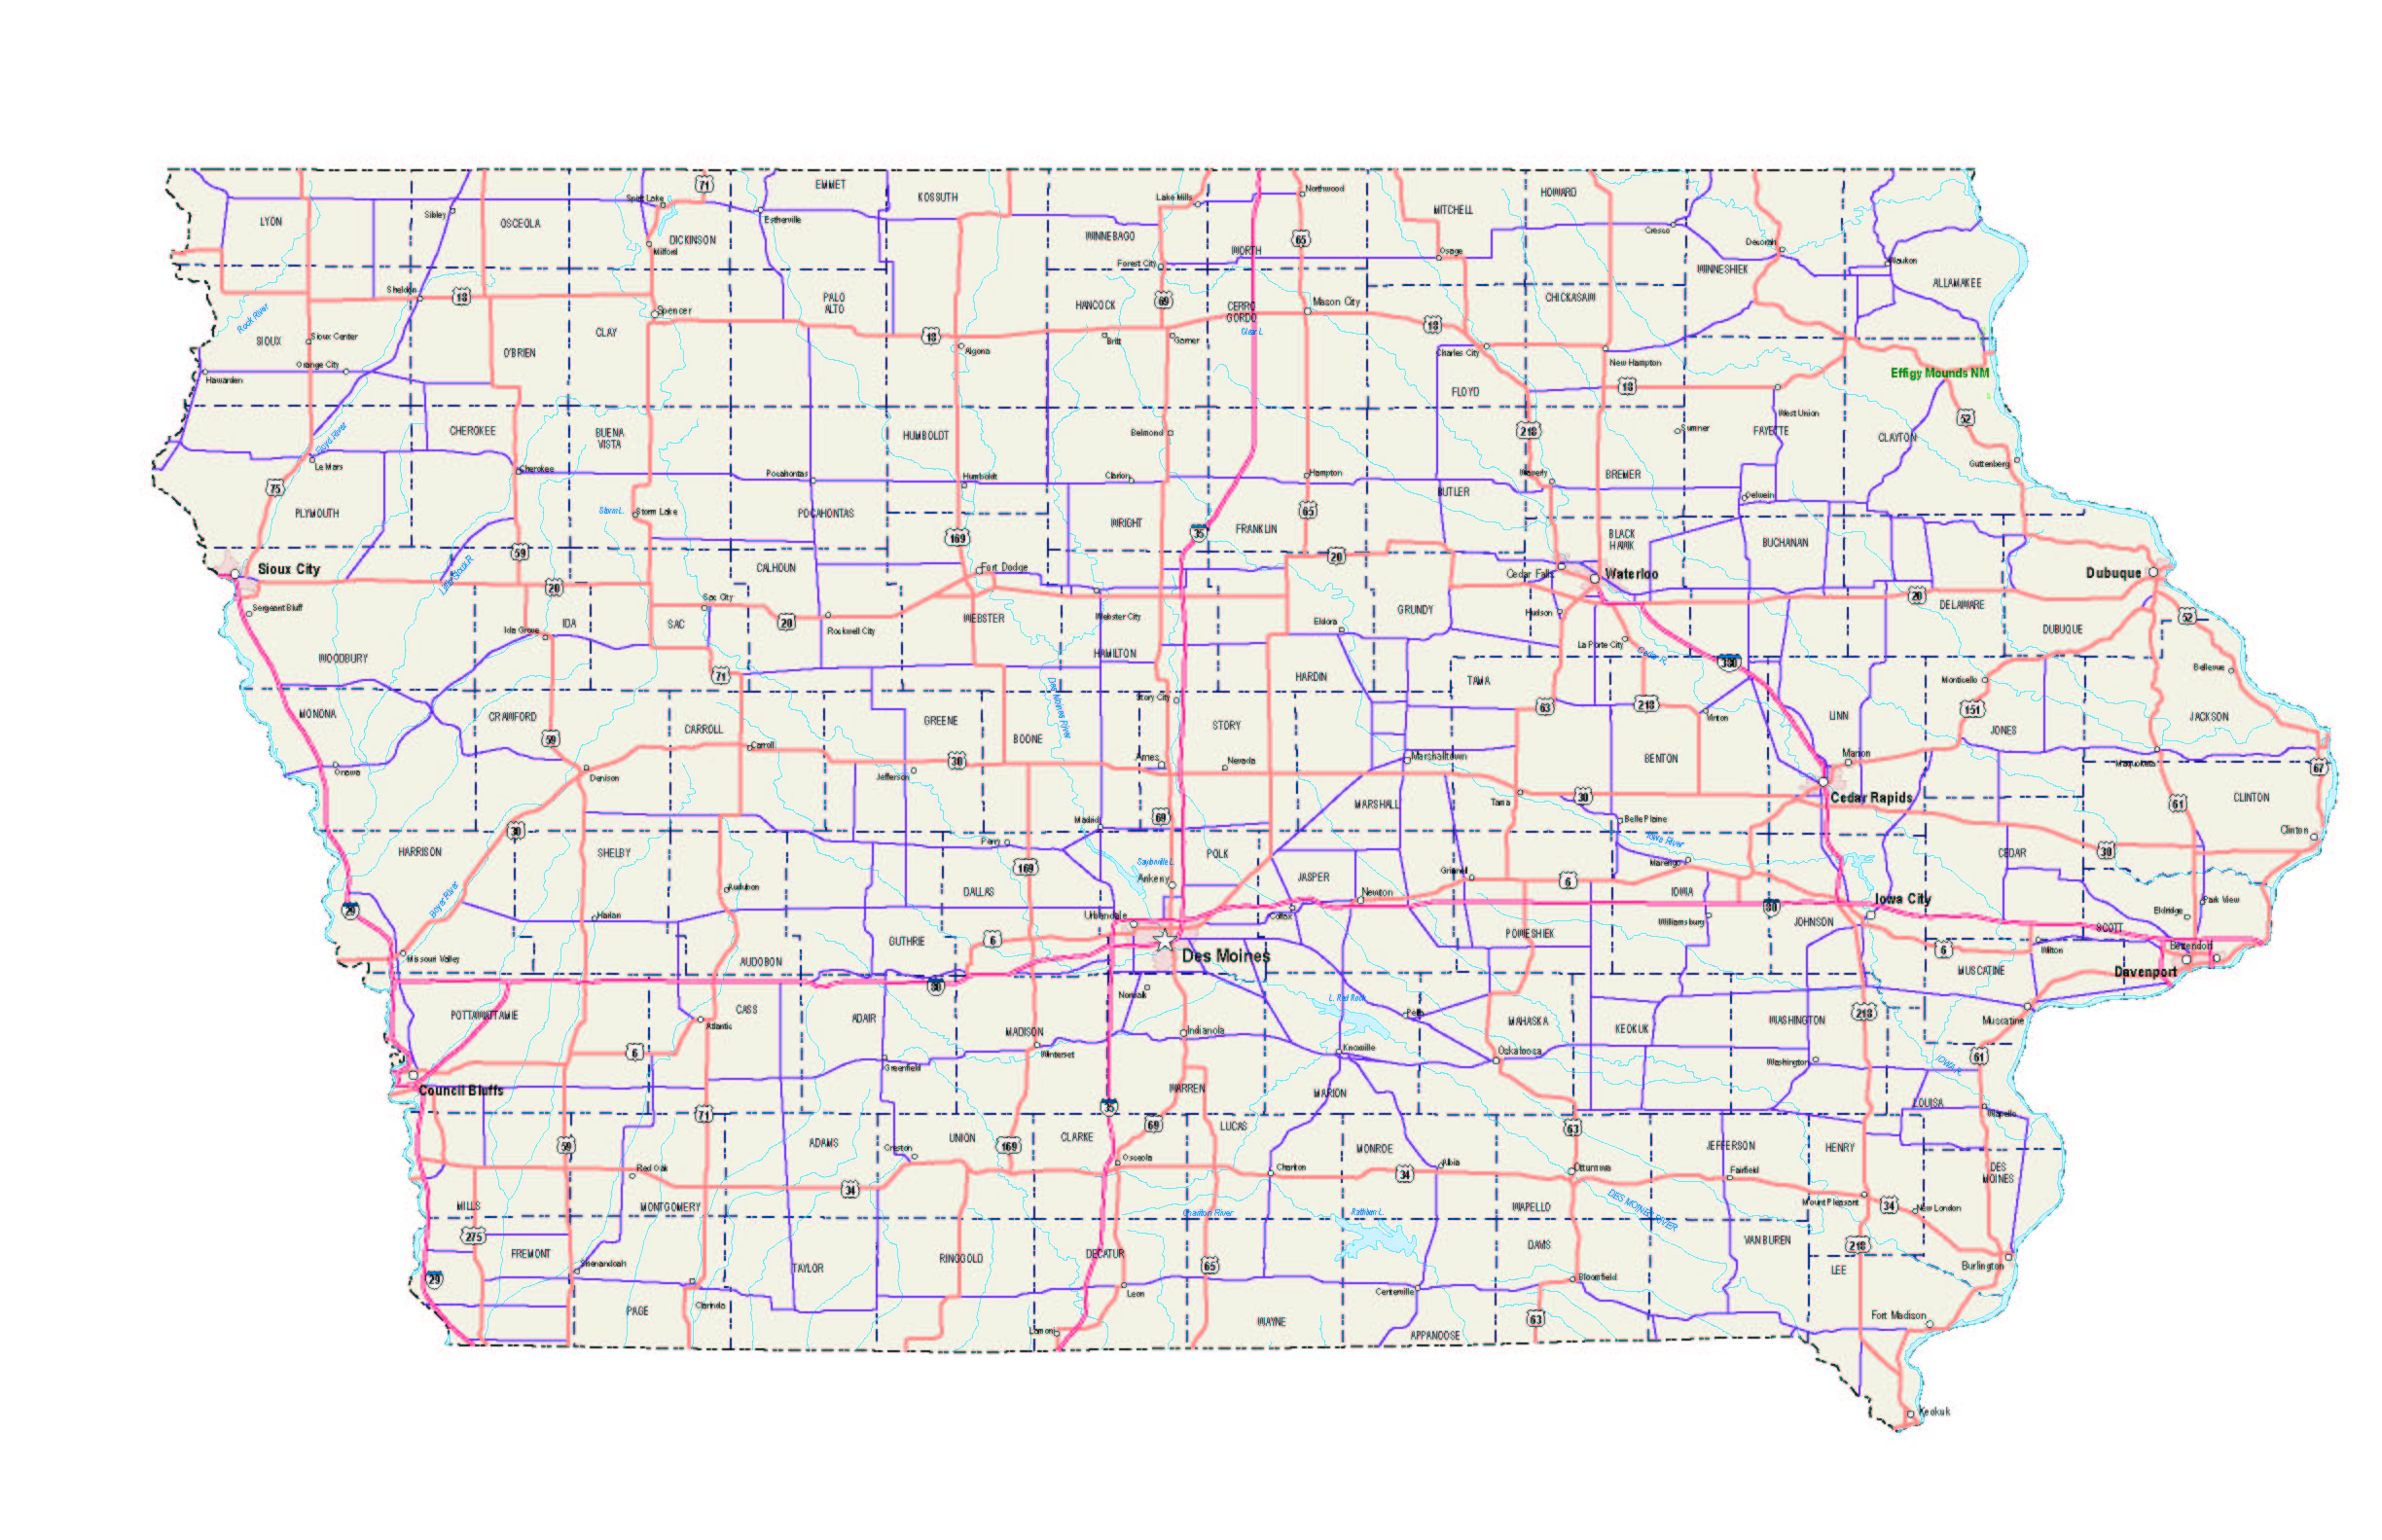 Iowa Maps Iowa Map Iowa Road Map Iowa State Map - United states map iowa